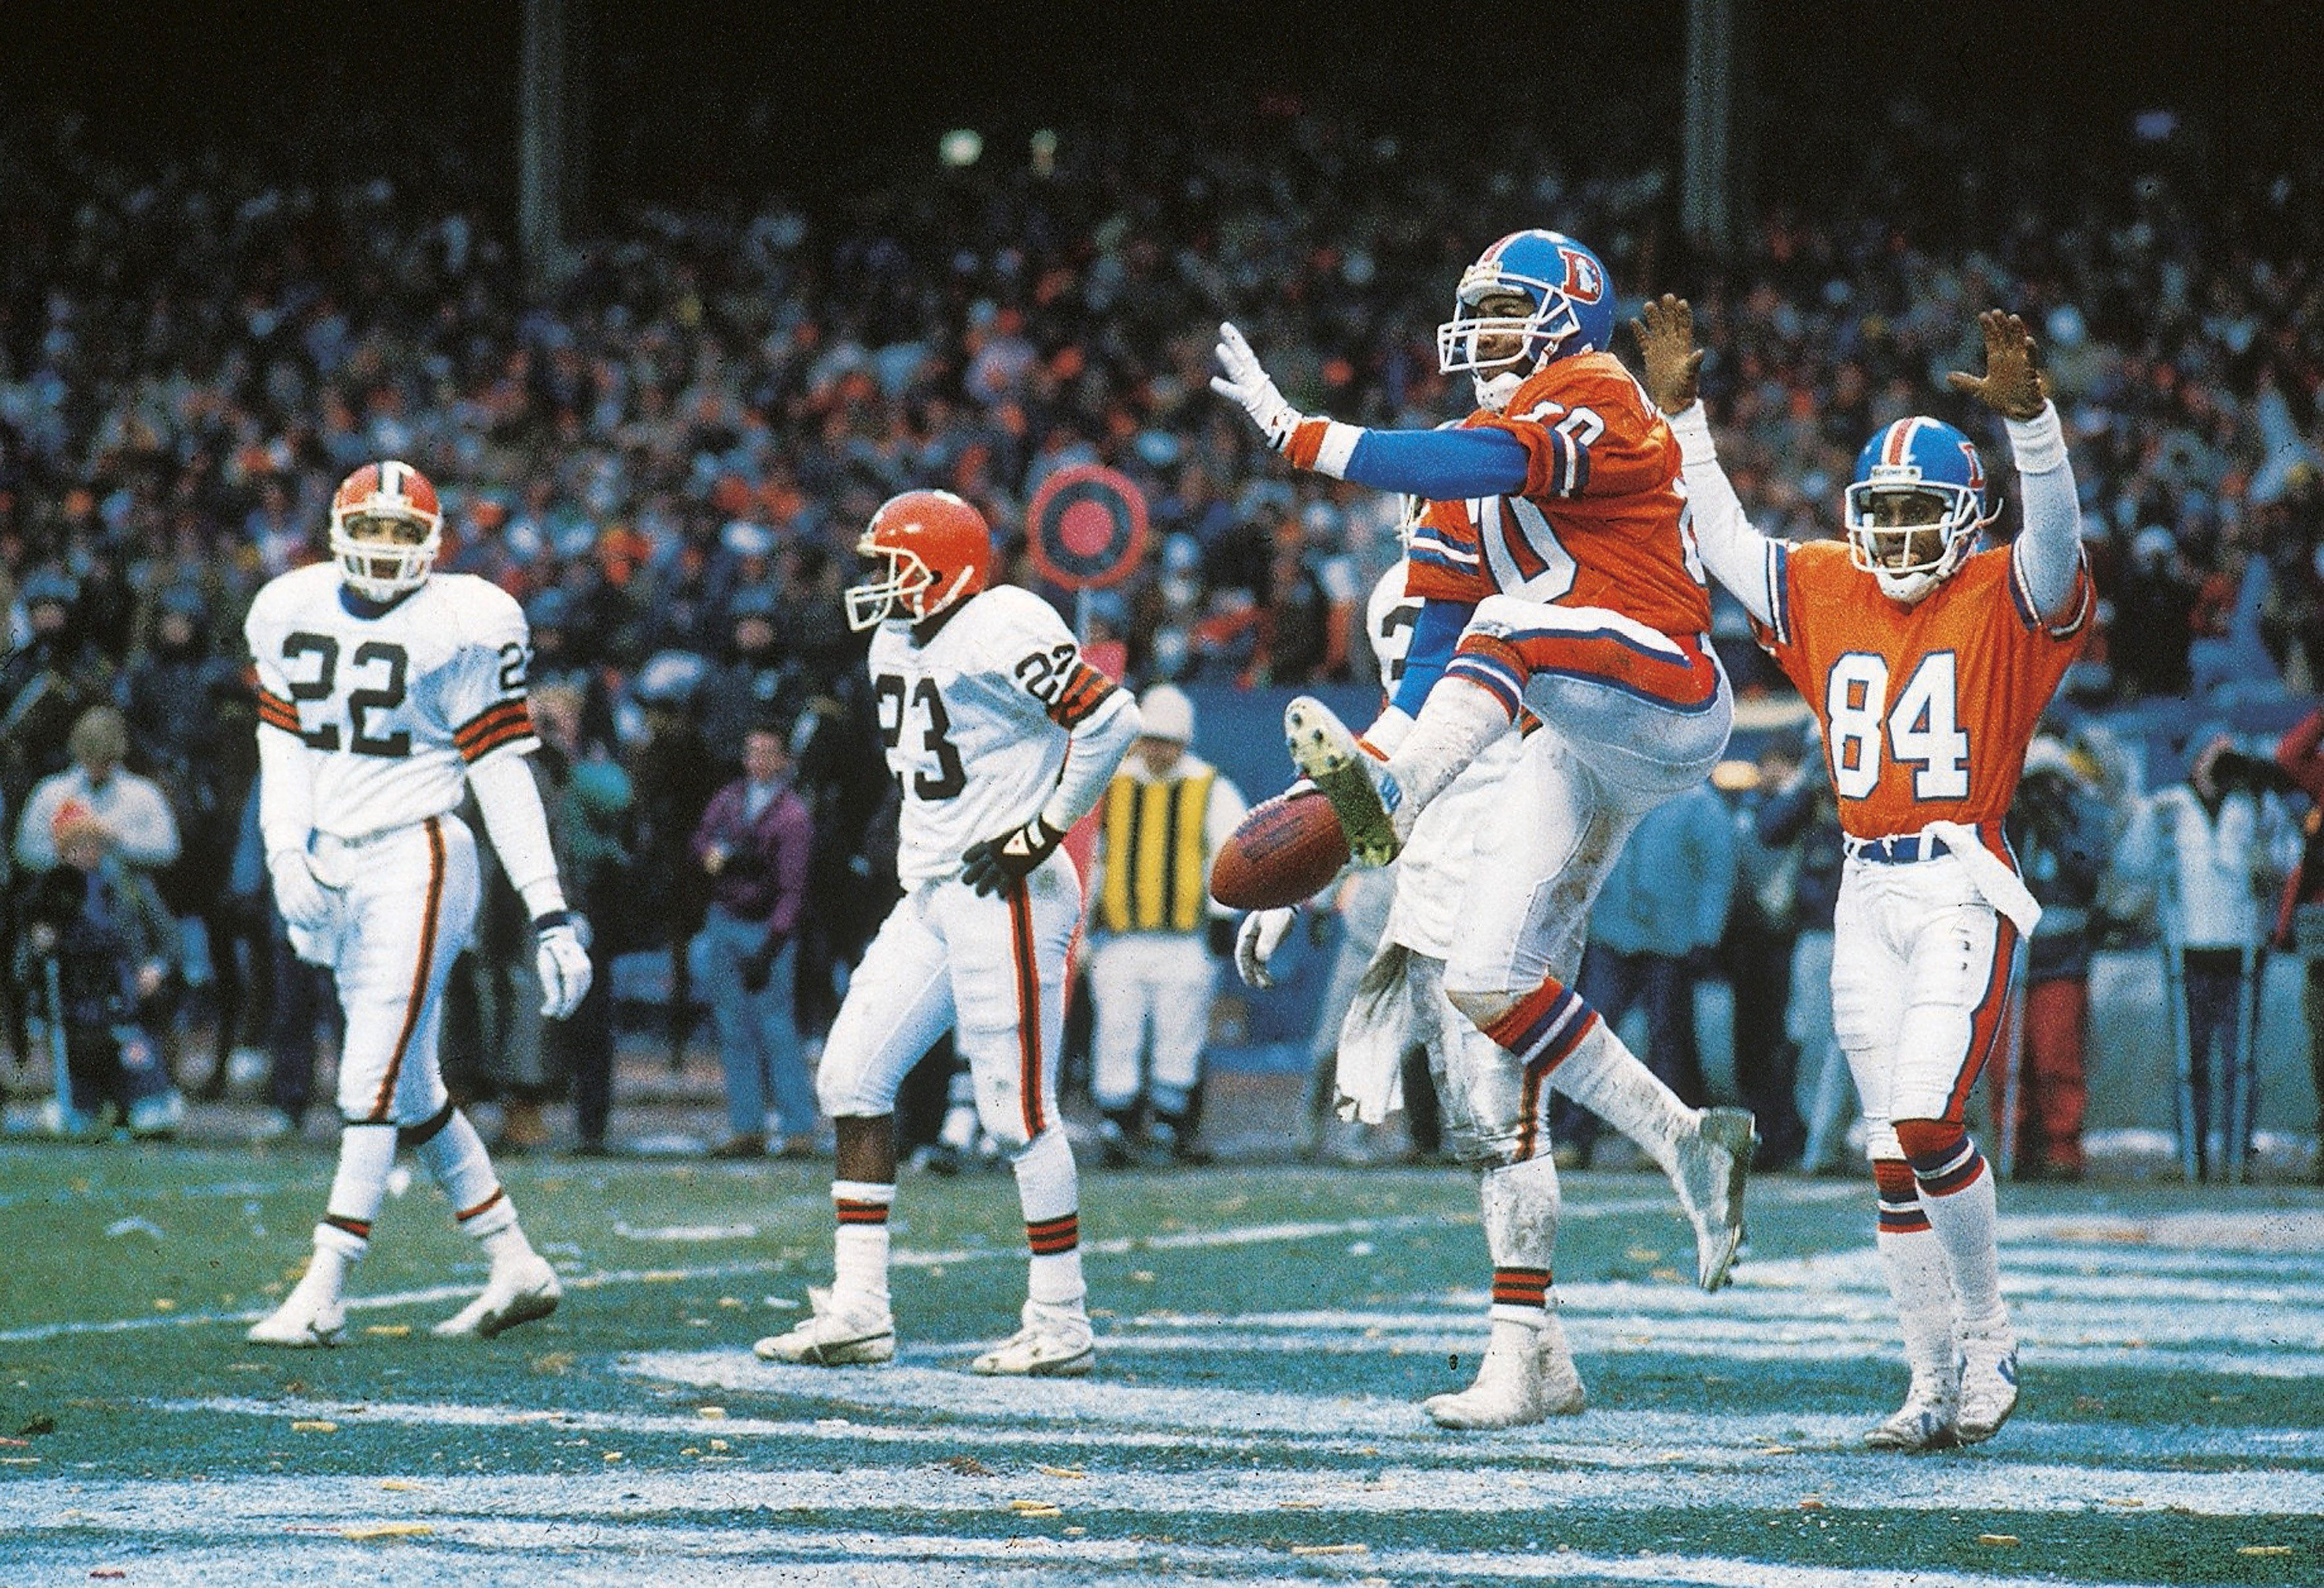 1987 AFC Conference Championship game